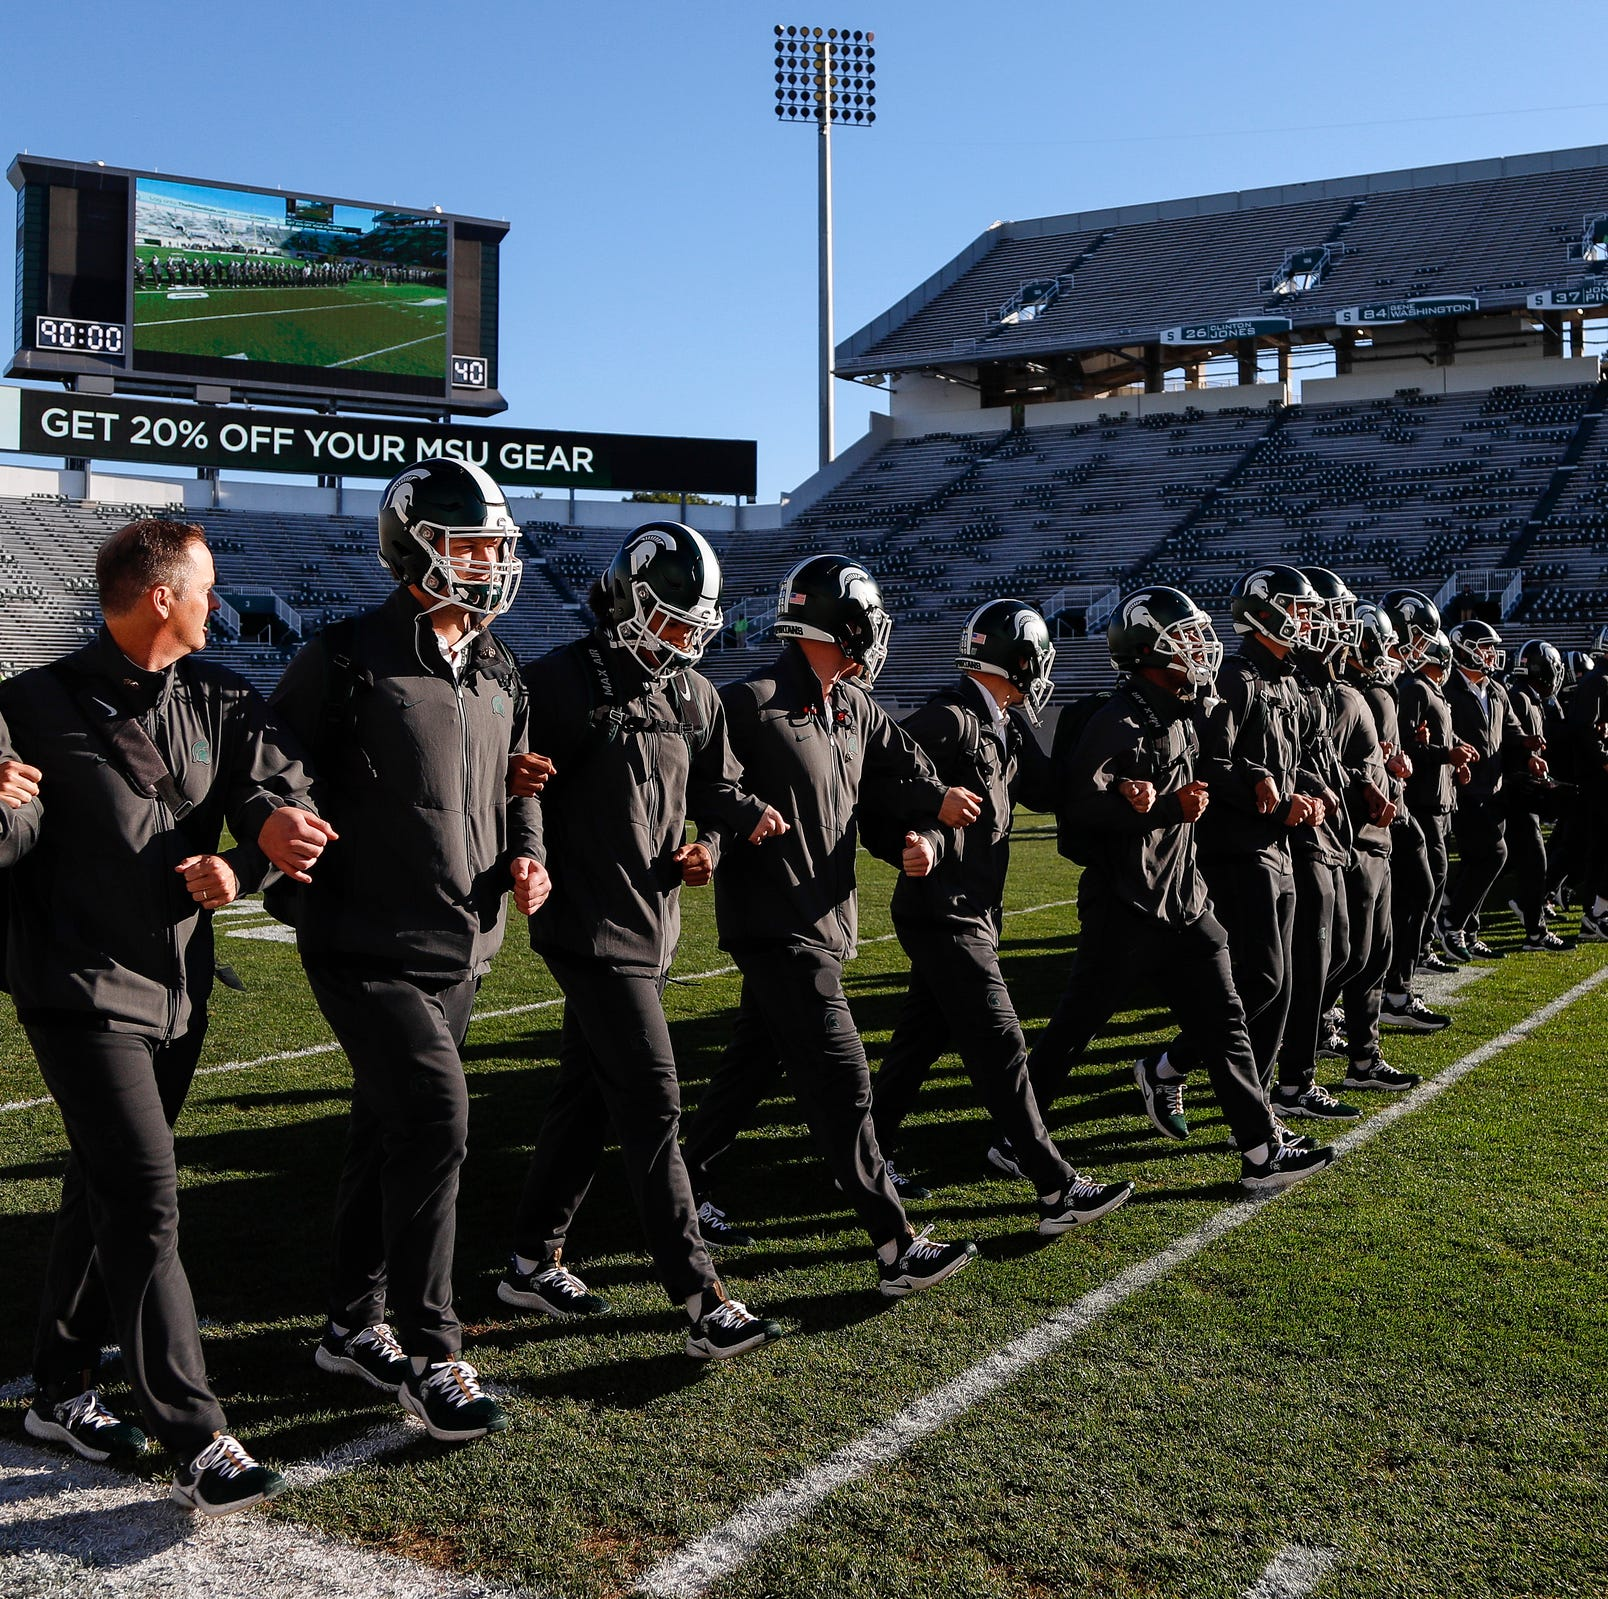 Michigan State football players lock arms and walk across the field before the Michigan game at Spartan Stadium in East Lansing on Sat., October 20, 2018.